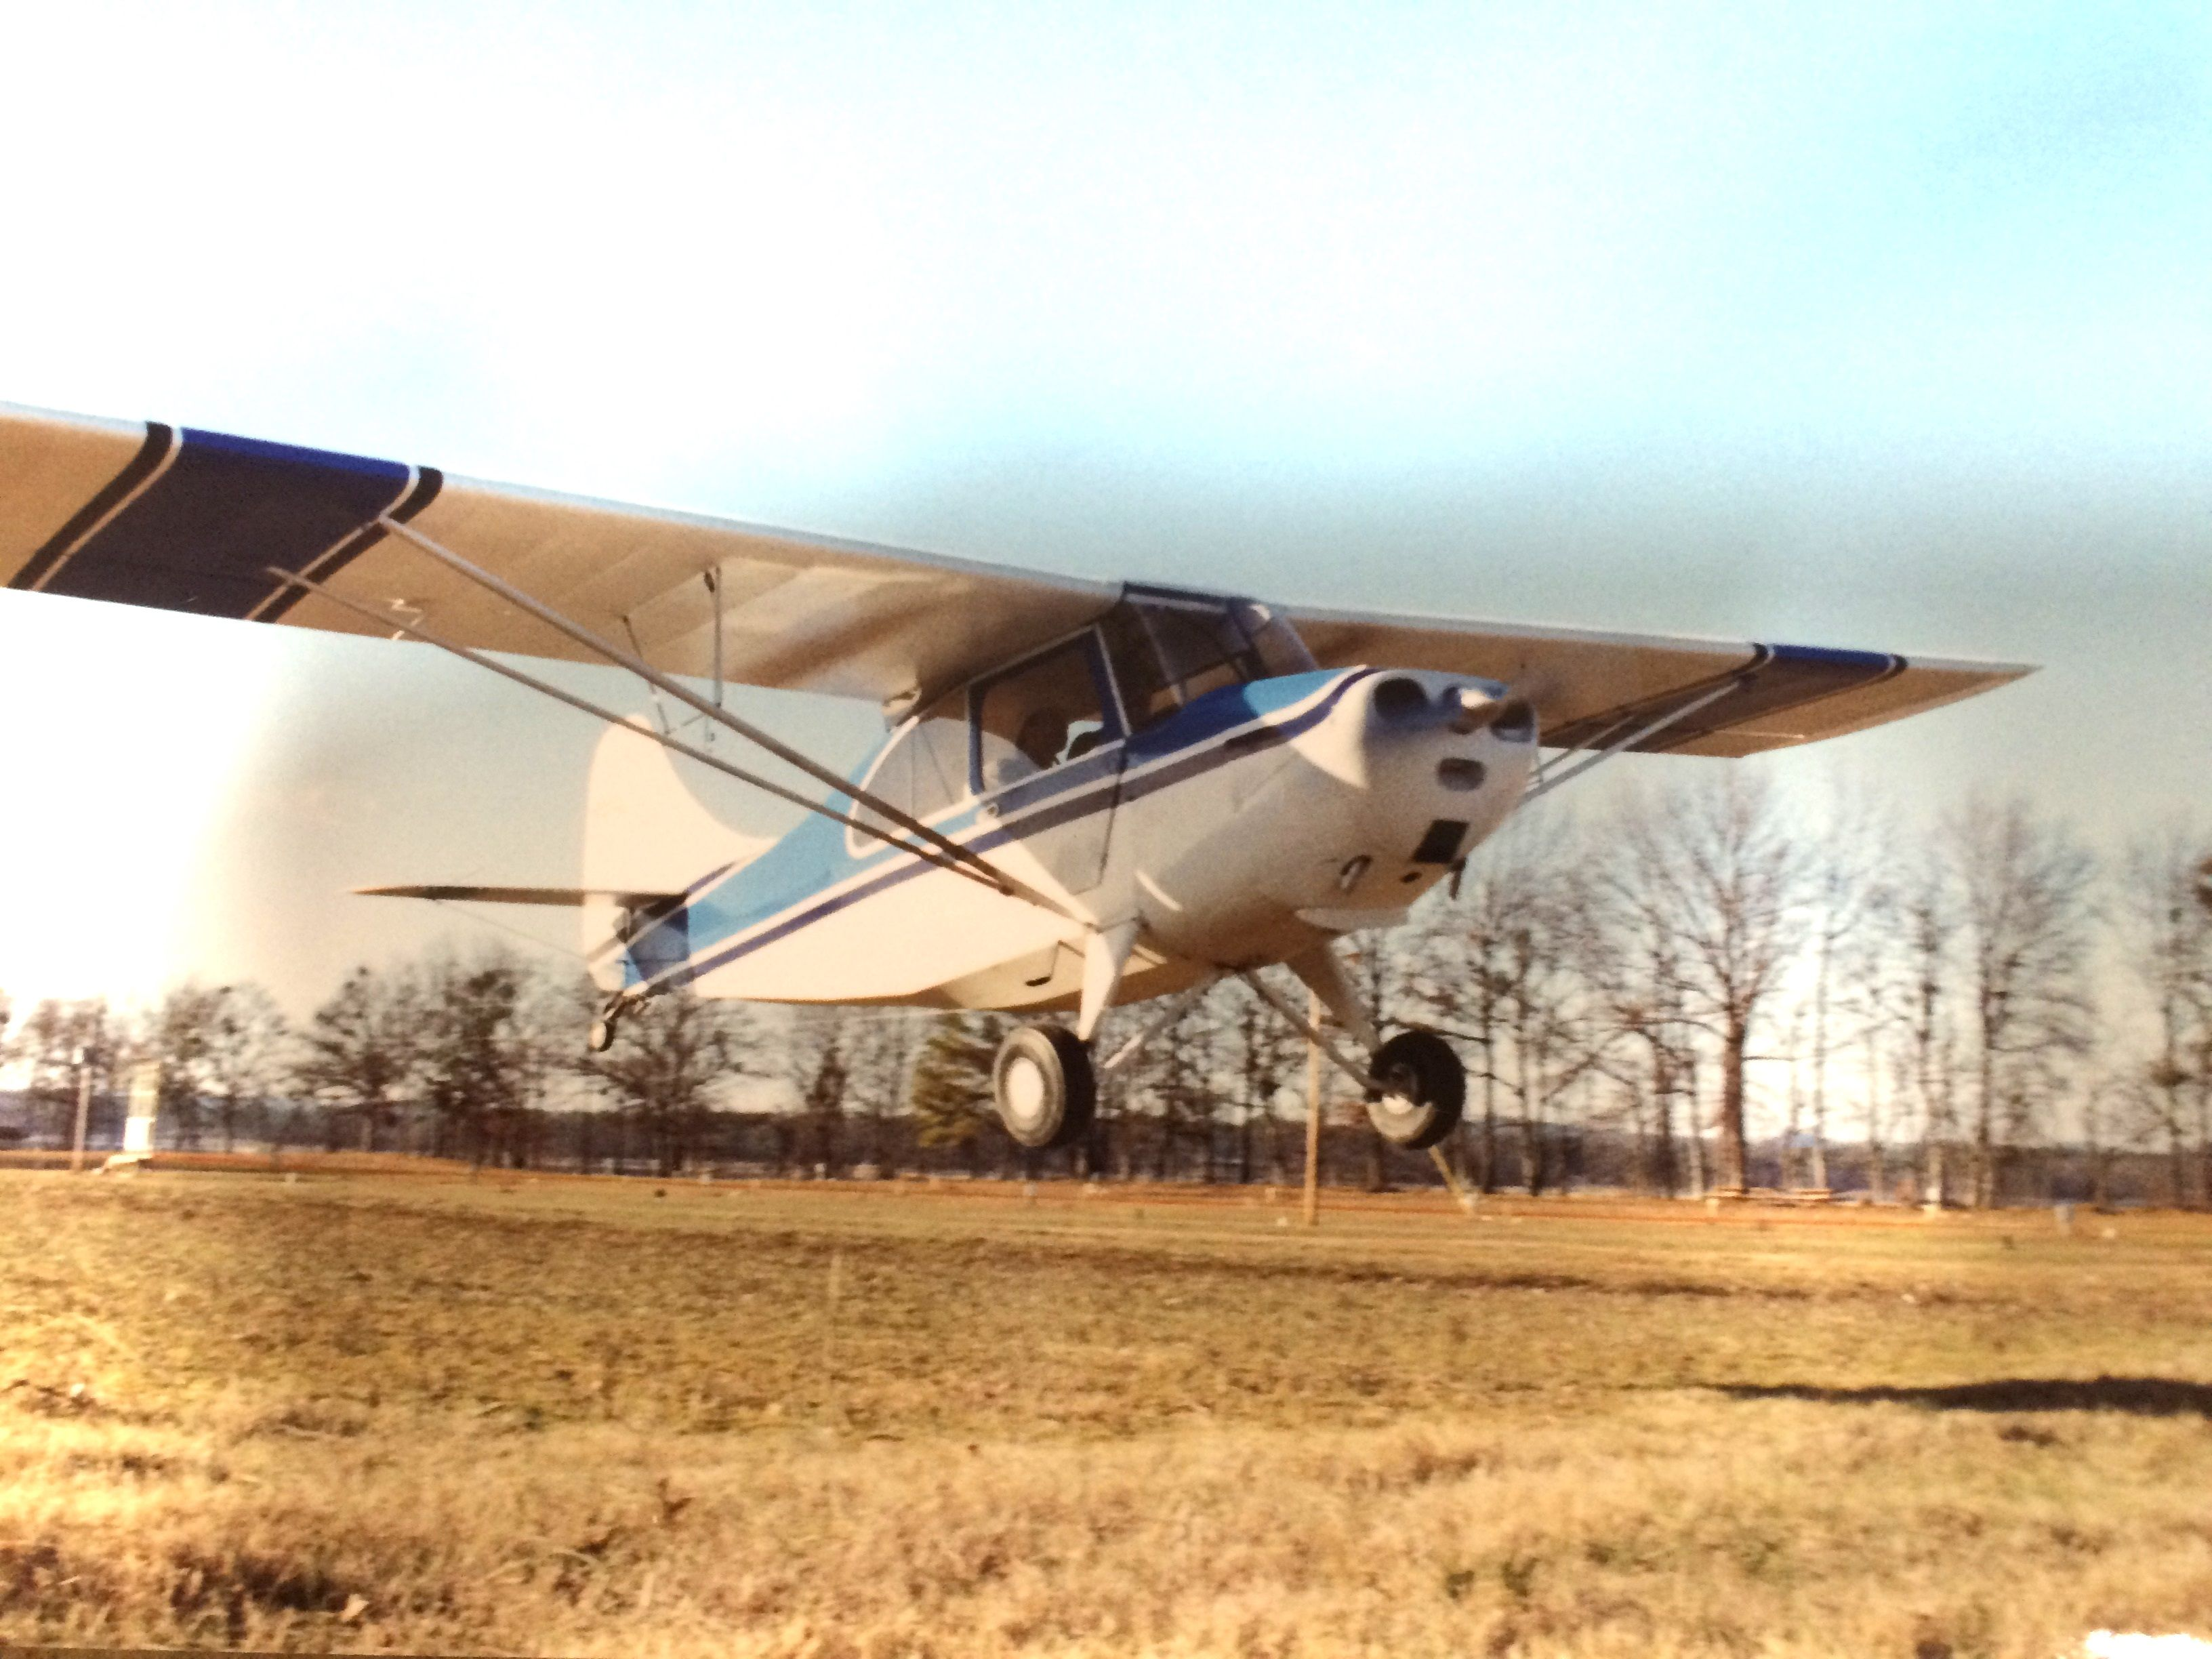 The 7AC, Champ I soloed in. N2486E, belonged to my father, an A/P IA, who sold it to a fellow in Alabama. I have right of first refusal when he decides to sell it.